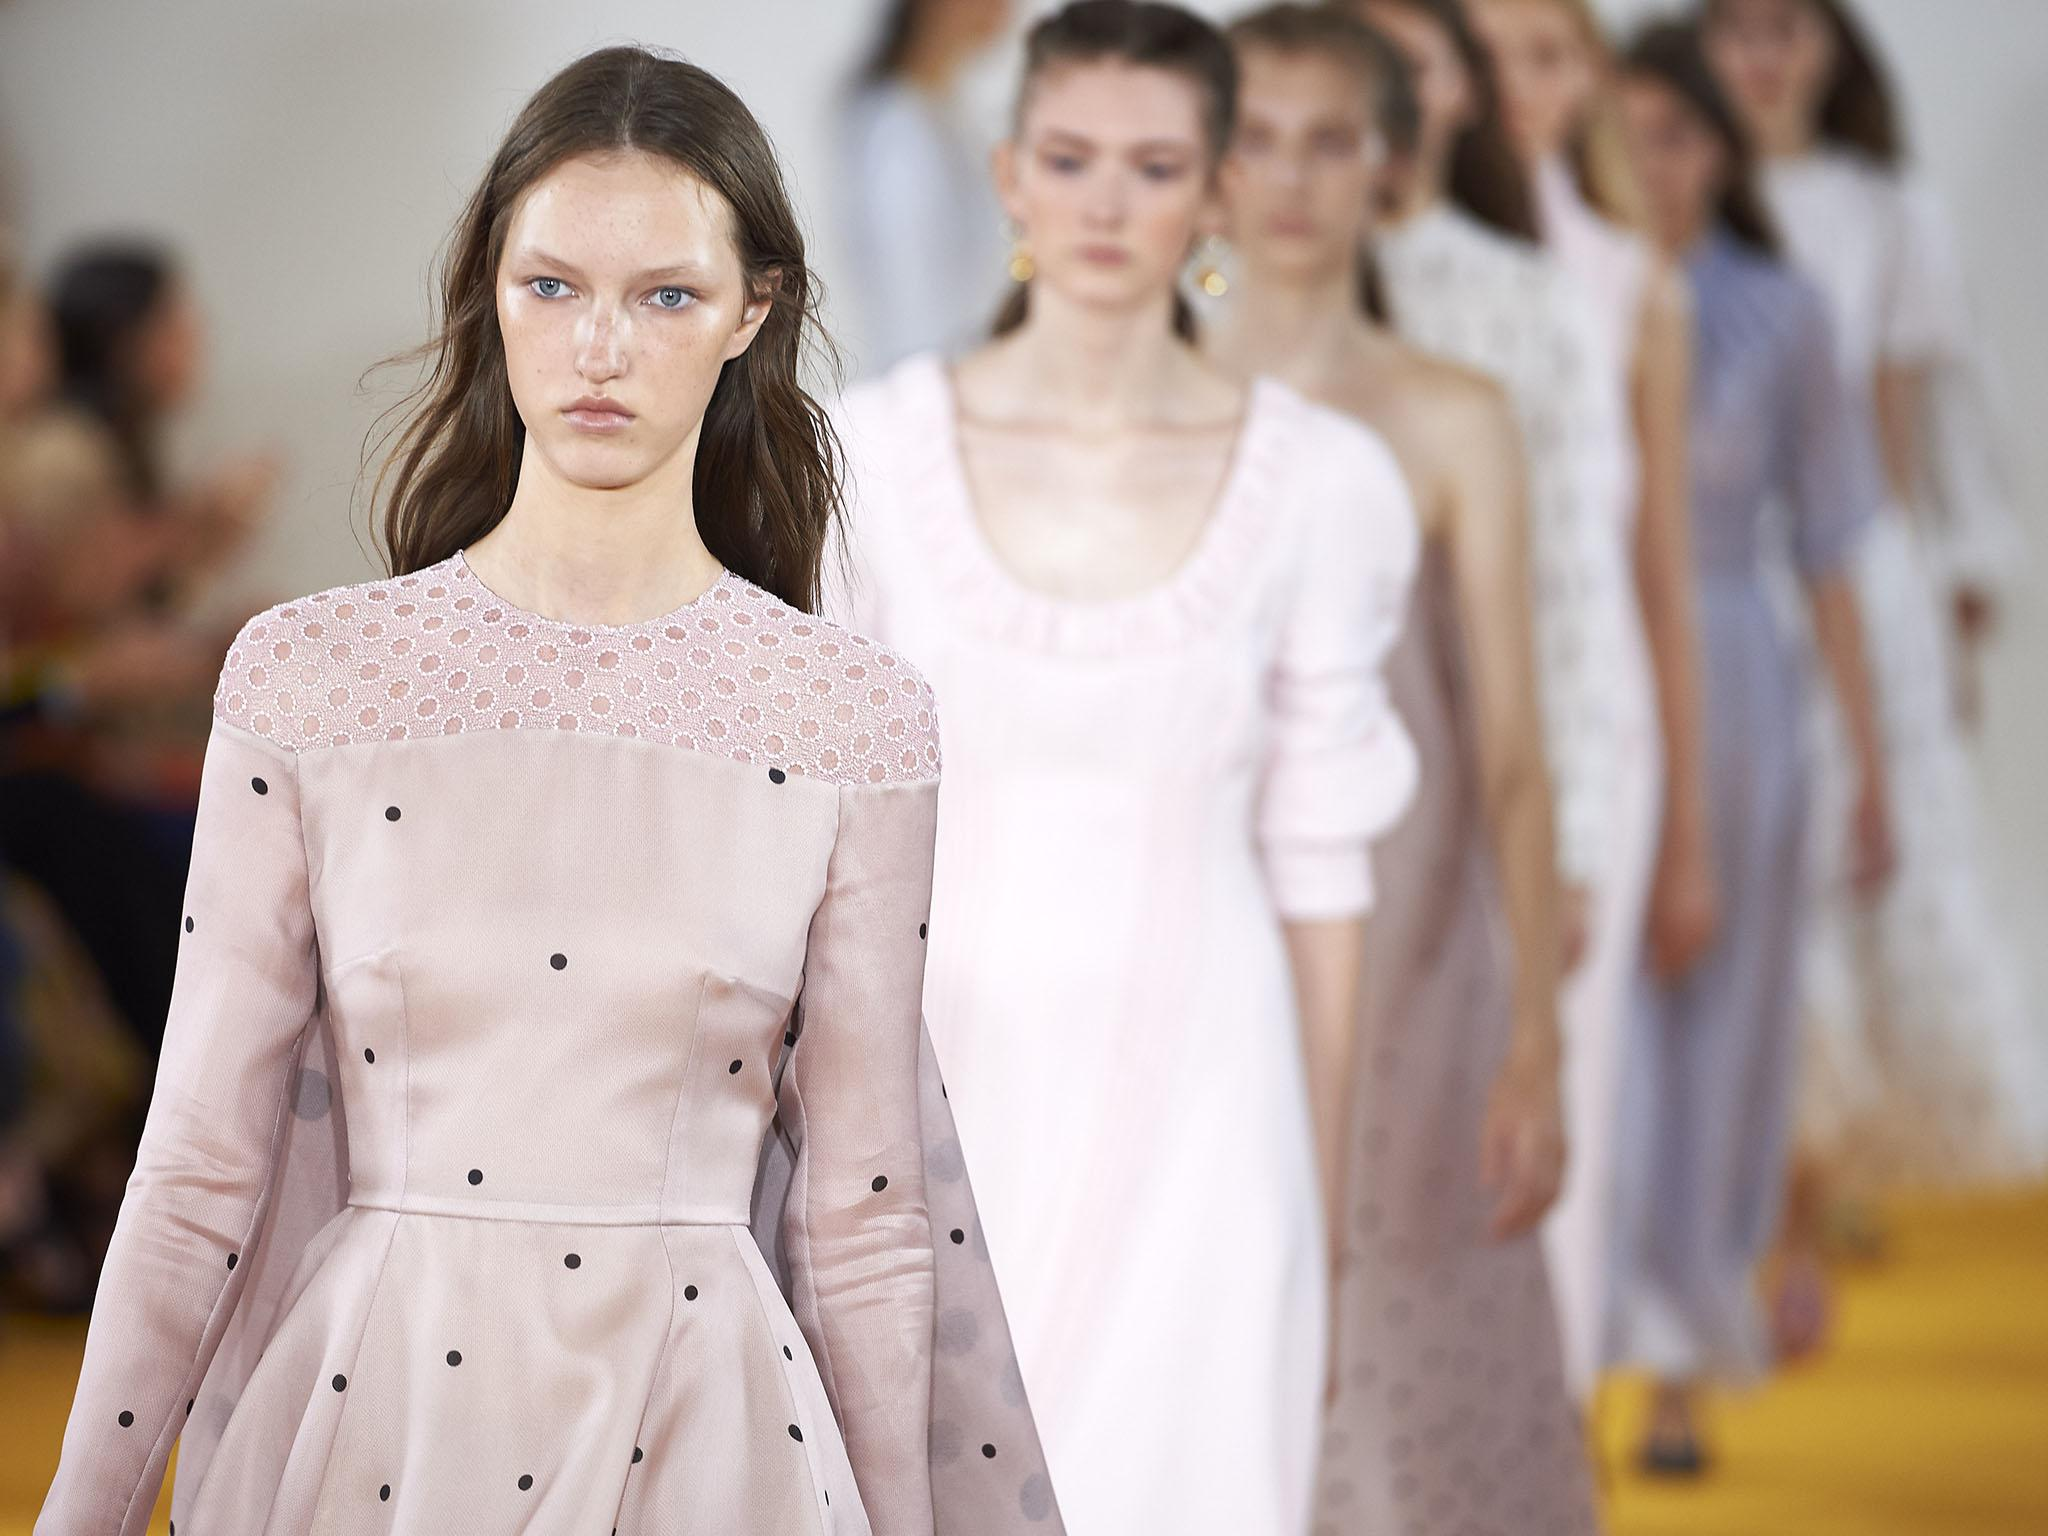 London Fashion Week: Tudor sleeves, warrior princesses and the mawkishness of young love